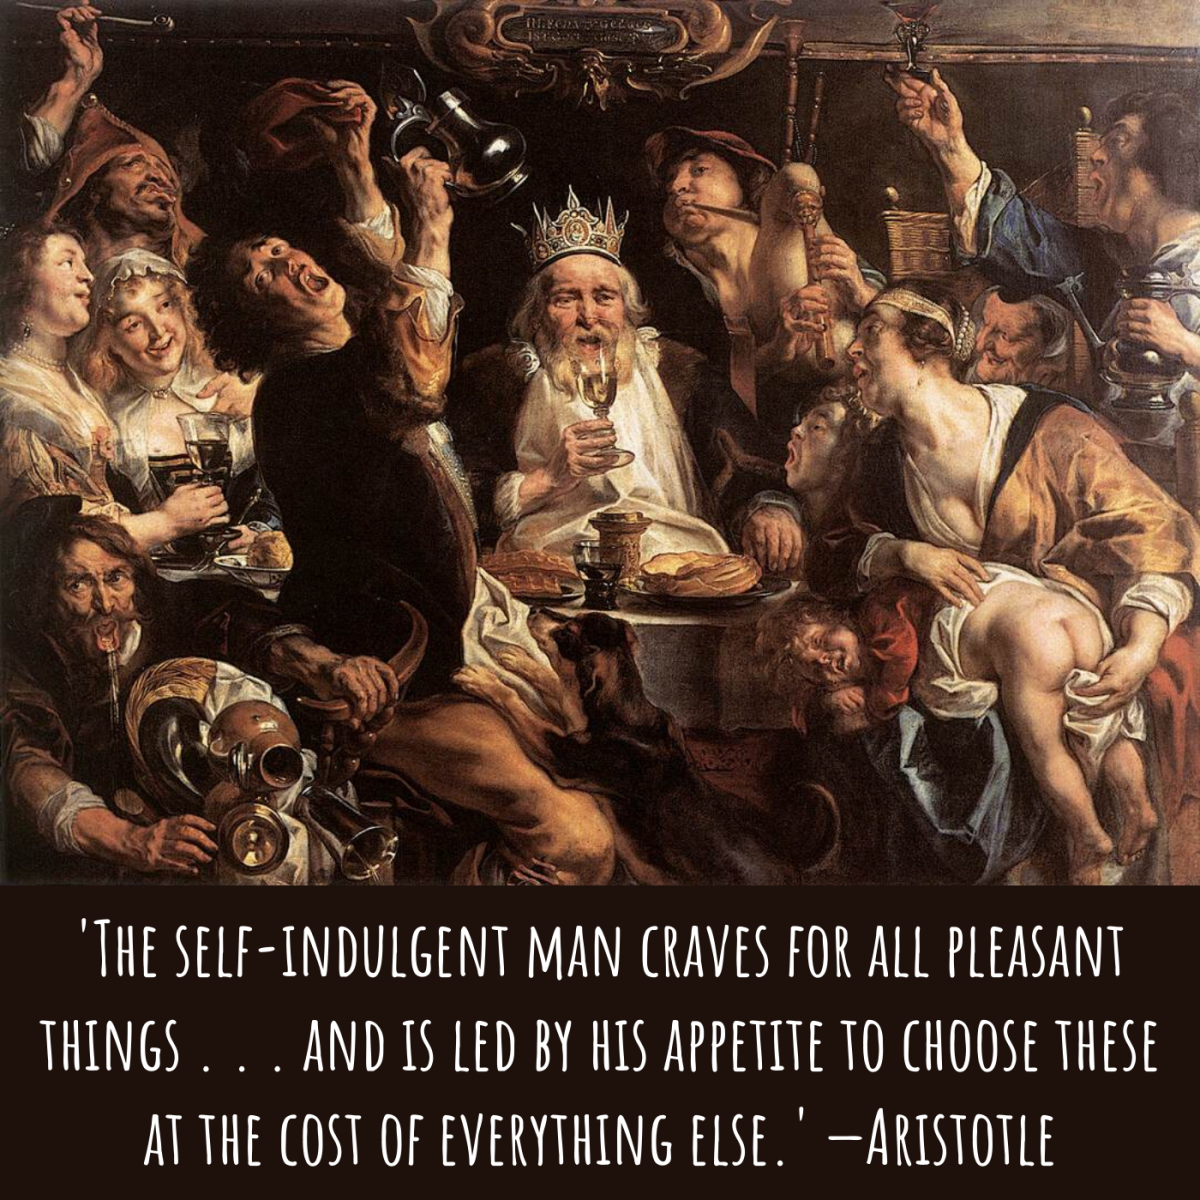 'The self-indulgent man craves for all pleasant things . . . and is led by his appetite to choose these at the cost of everything else.'—Aristotle